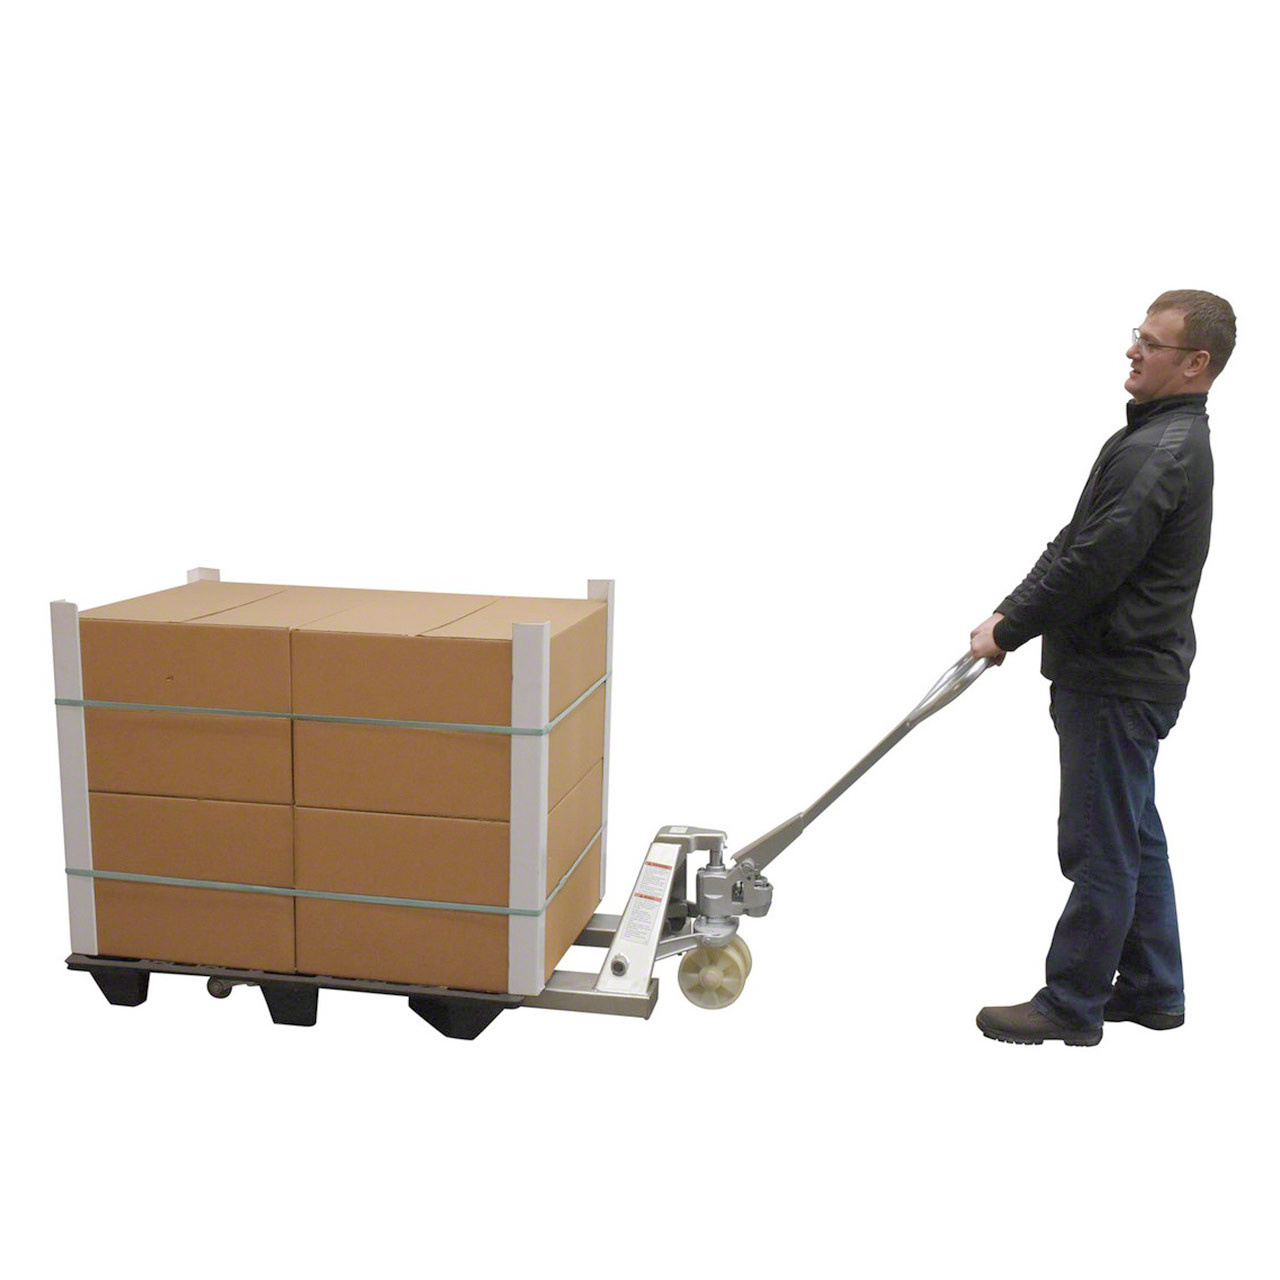 Hauling load with Sanitary Environment Pallet Jack